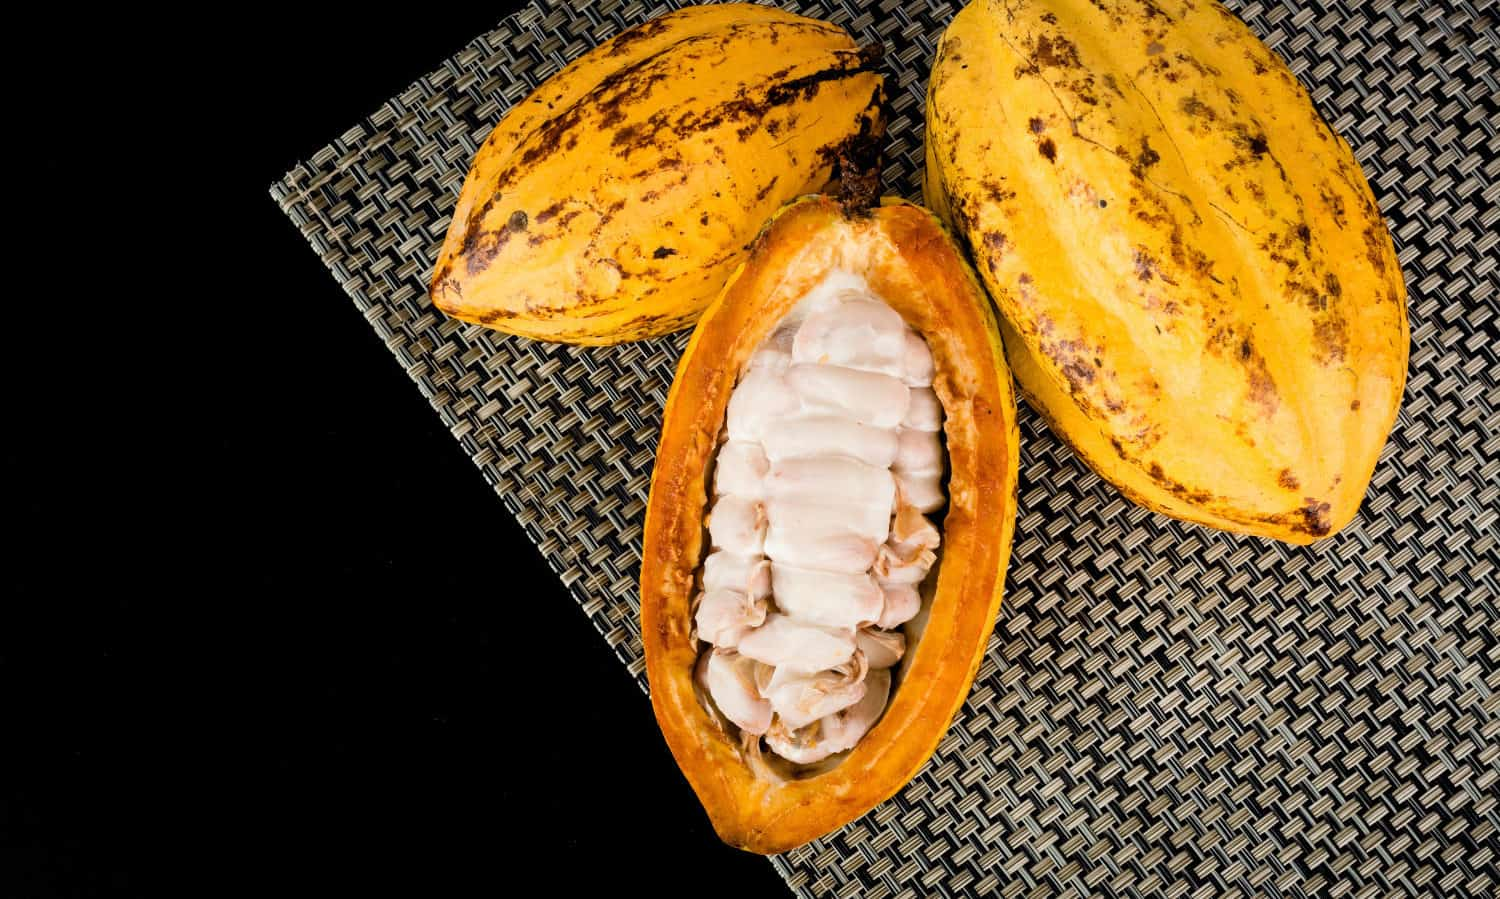 The world's largest chocolate company wants 100-percent sustainably-sourced cocoa.